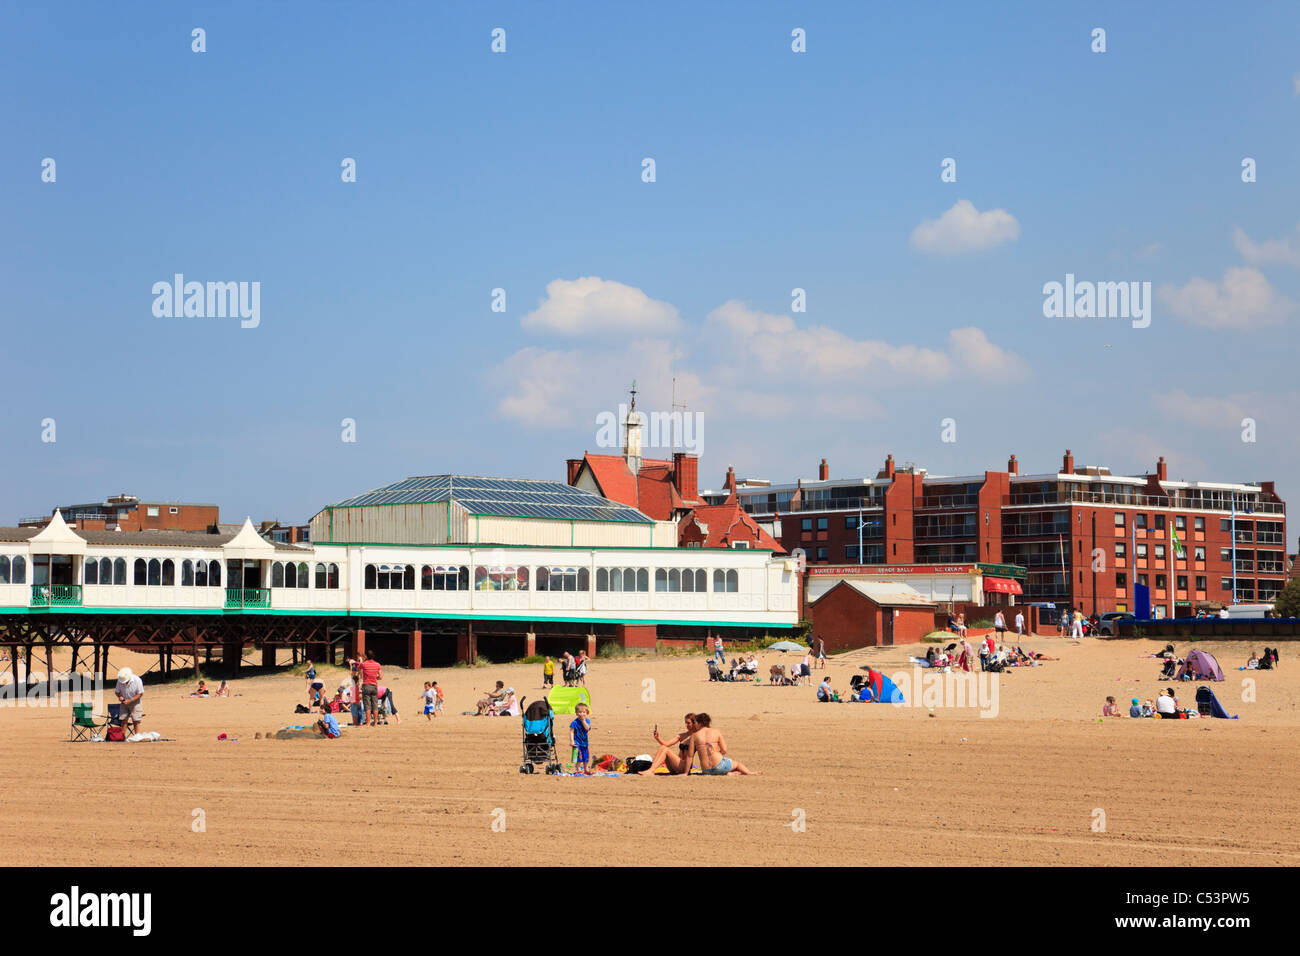 Lytham St Annes, Lancashire, England, UK. Holidaymakers on sandy beach by the pier in seaside resort - Stock Image